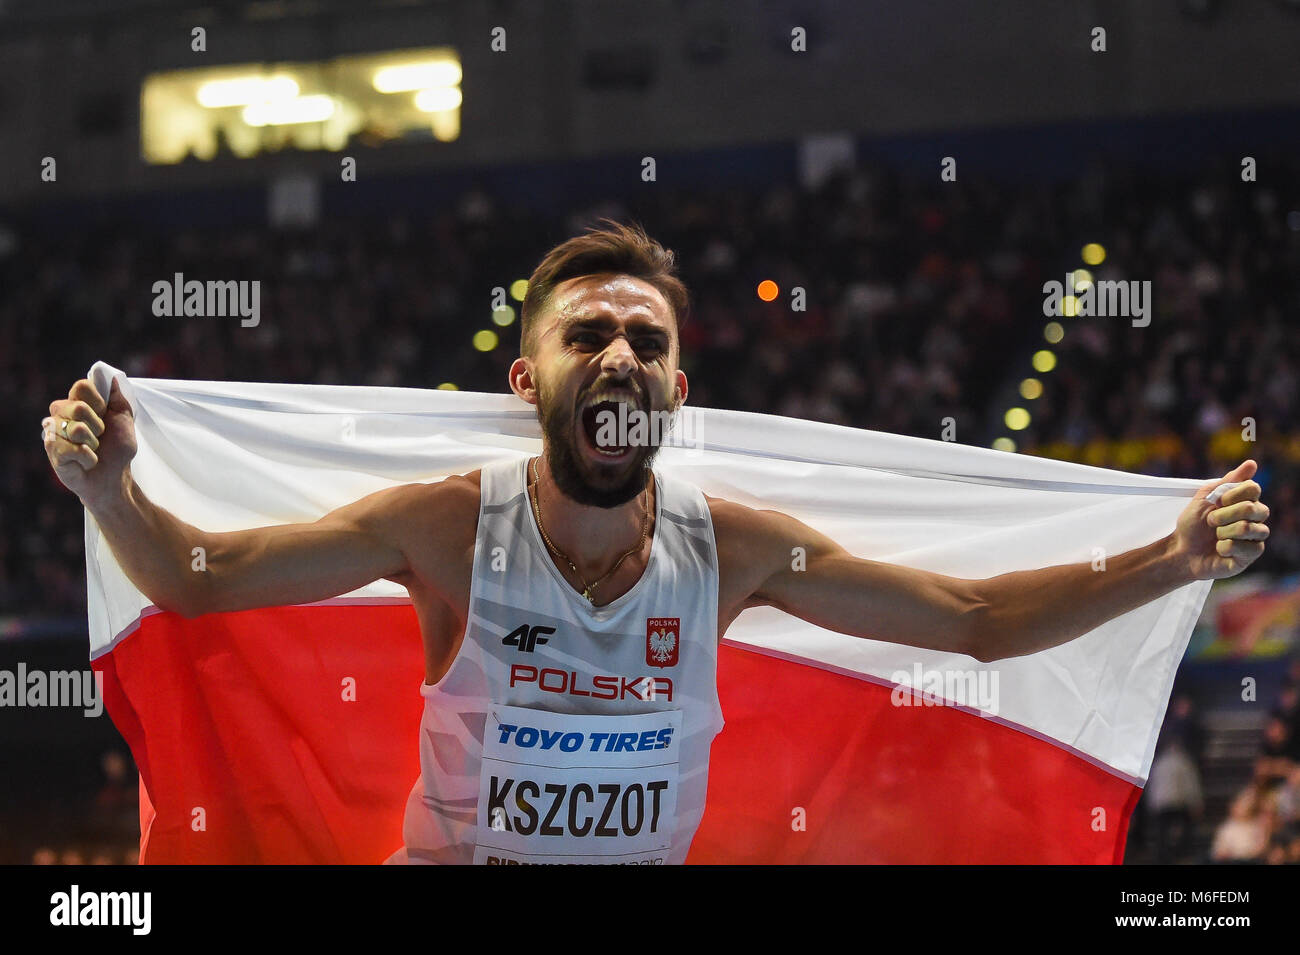 Birmingham, UK. March 3, 2018. Adam Kszczot of Poland winning 800 meter at World indoor Athletics Championship - Stock Image